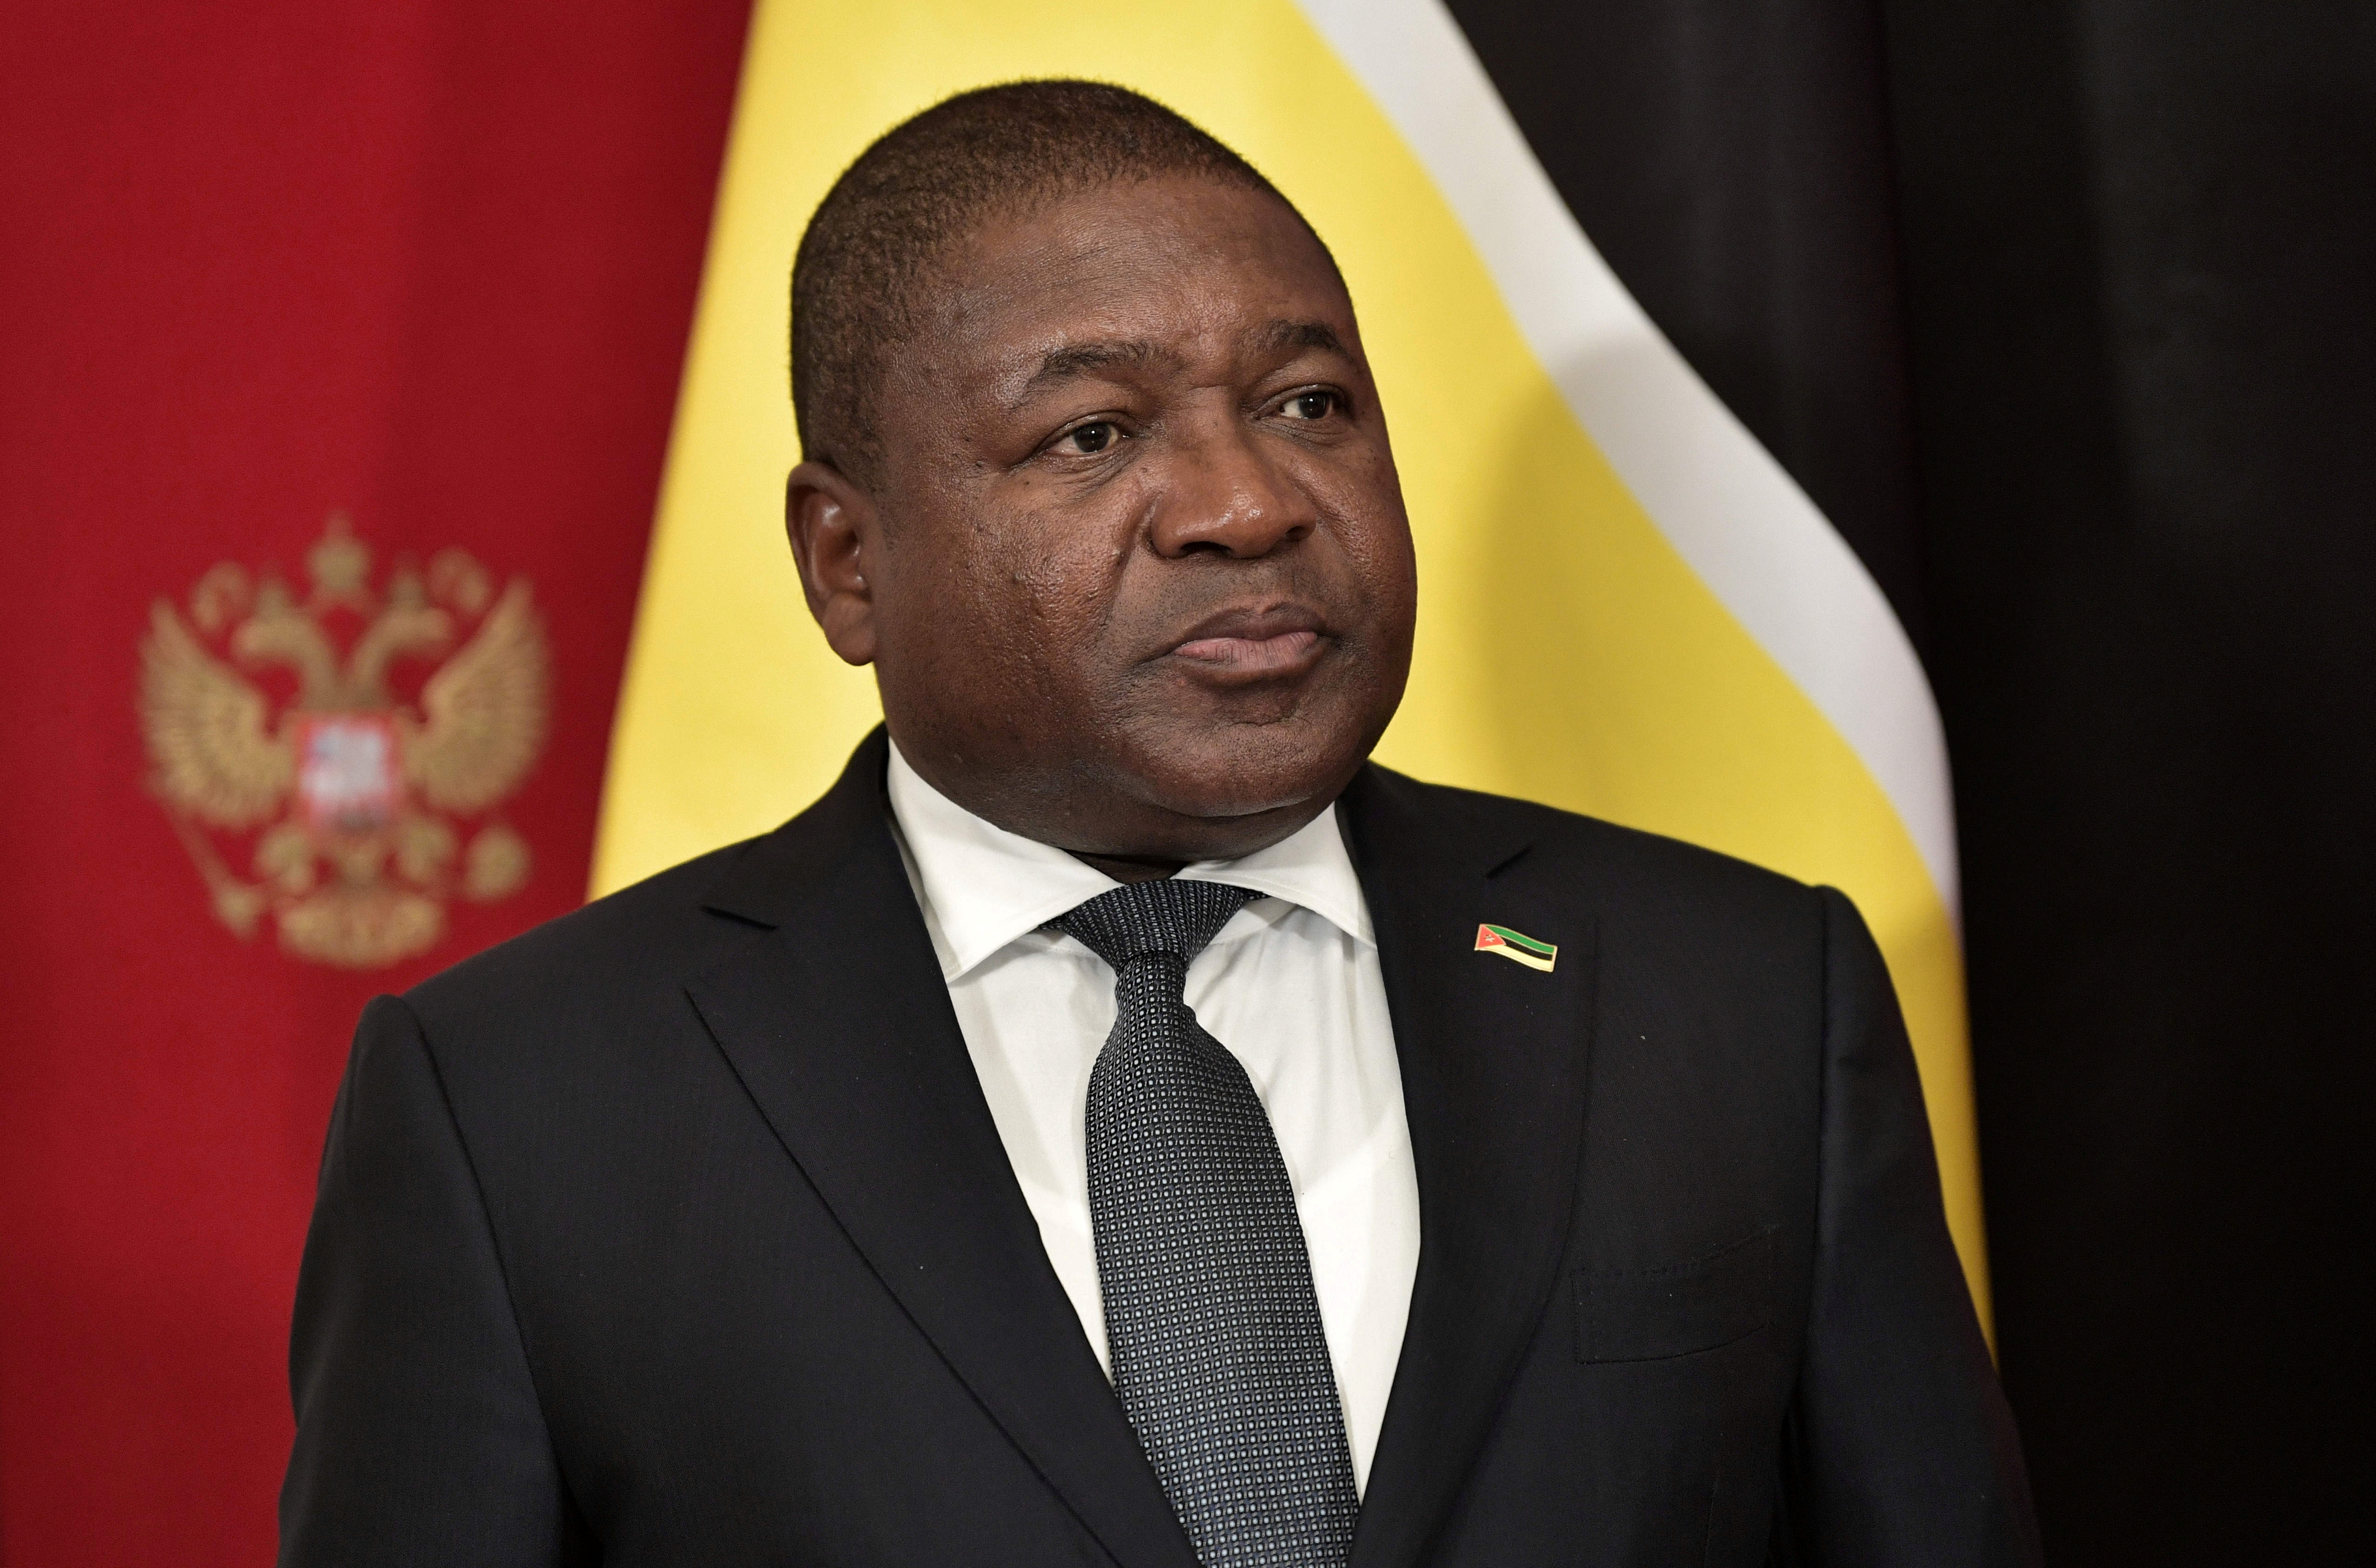 Mozambique's President Filipe Nyusi attends a signing ceremony following the talks with Russia's President Vladimir Putin in Moscow, Russia August 22, 2019. Sputnik/Alexey Nikolsky/Kremlin via REUTERS